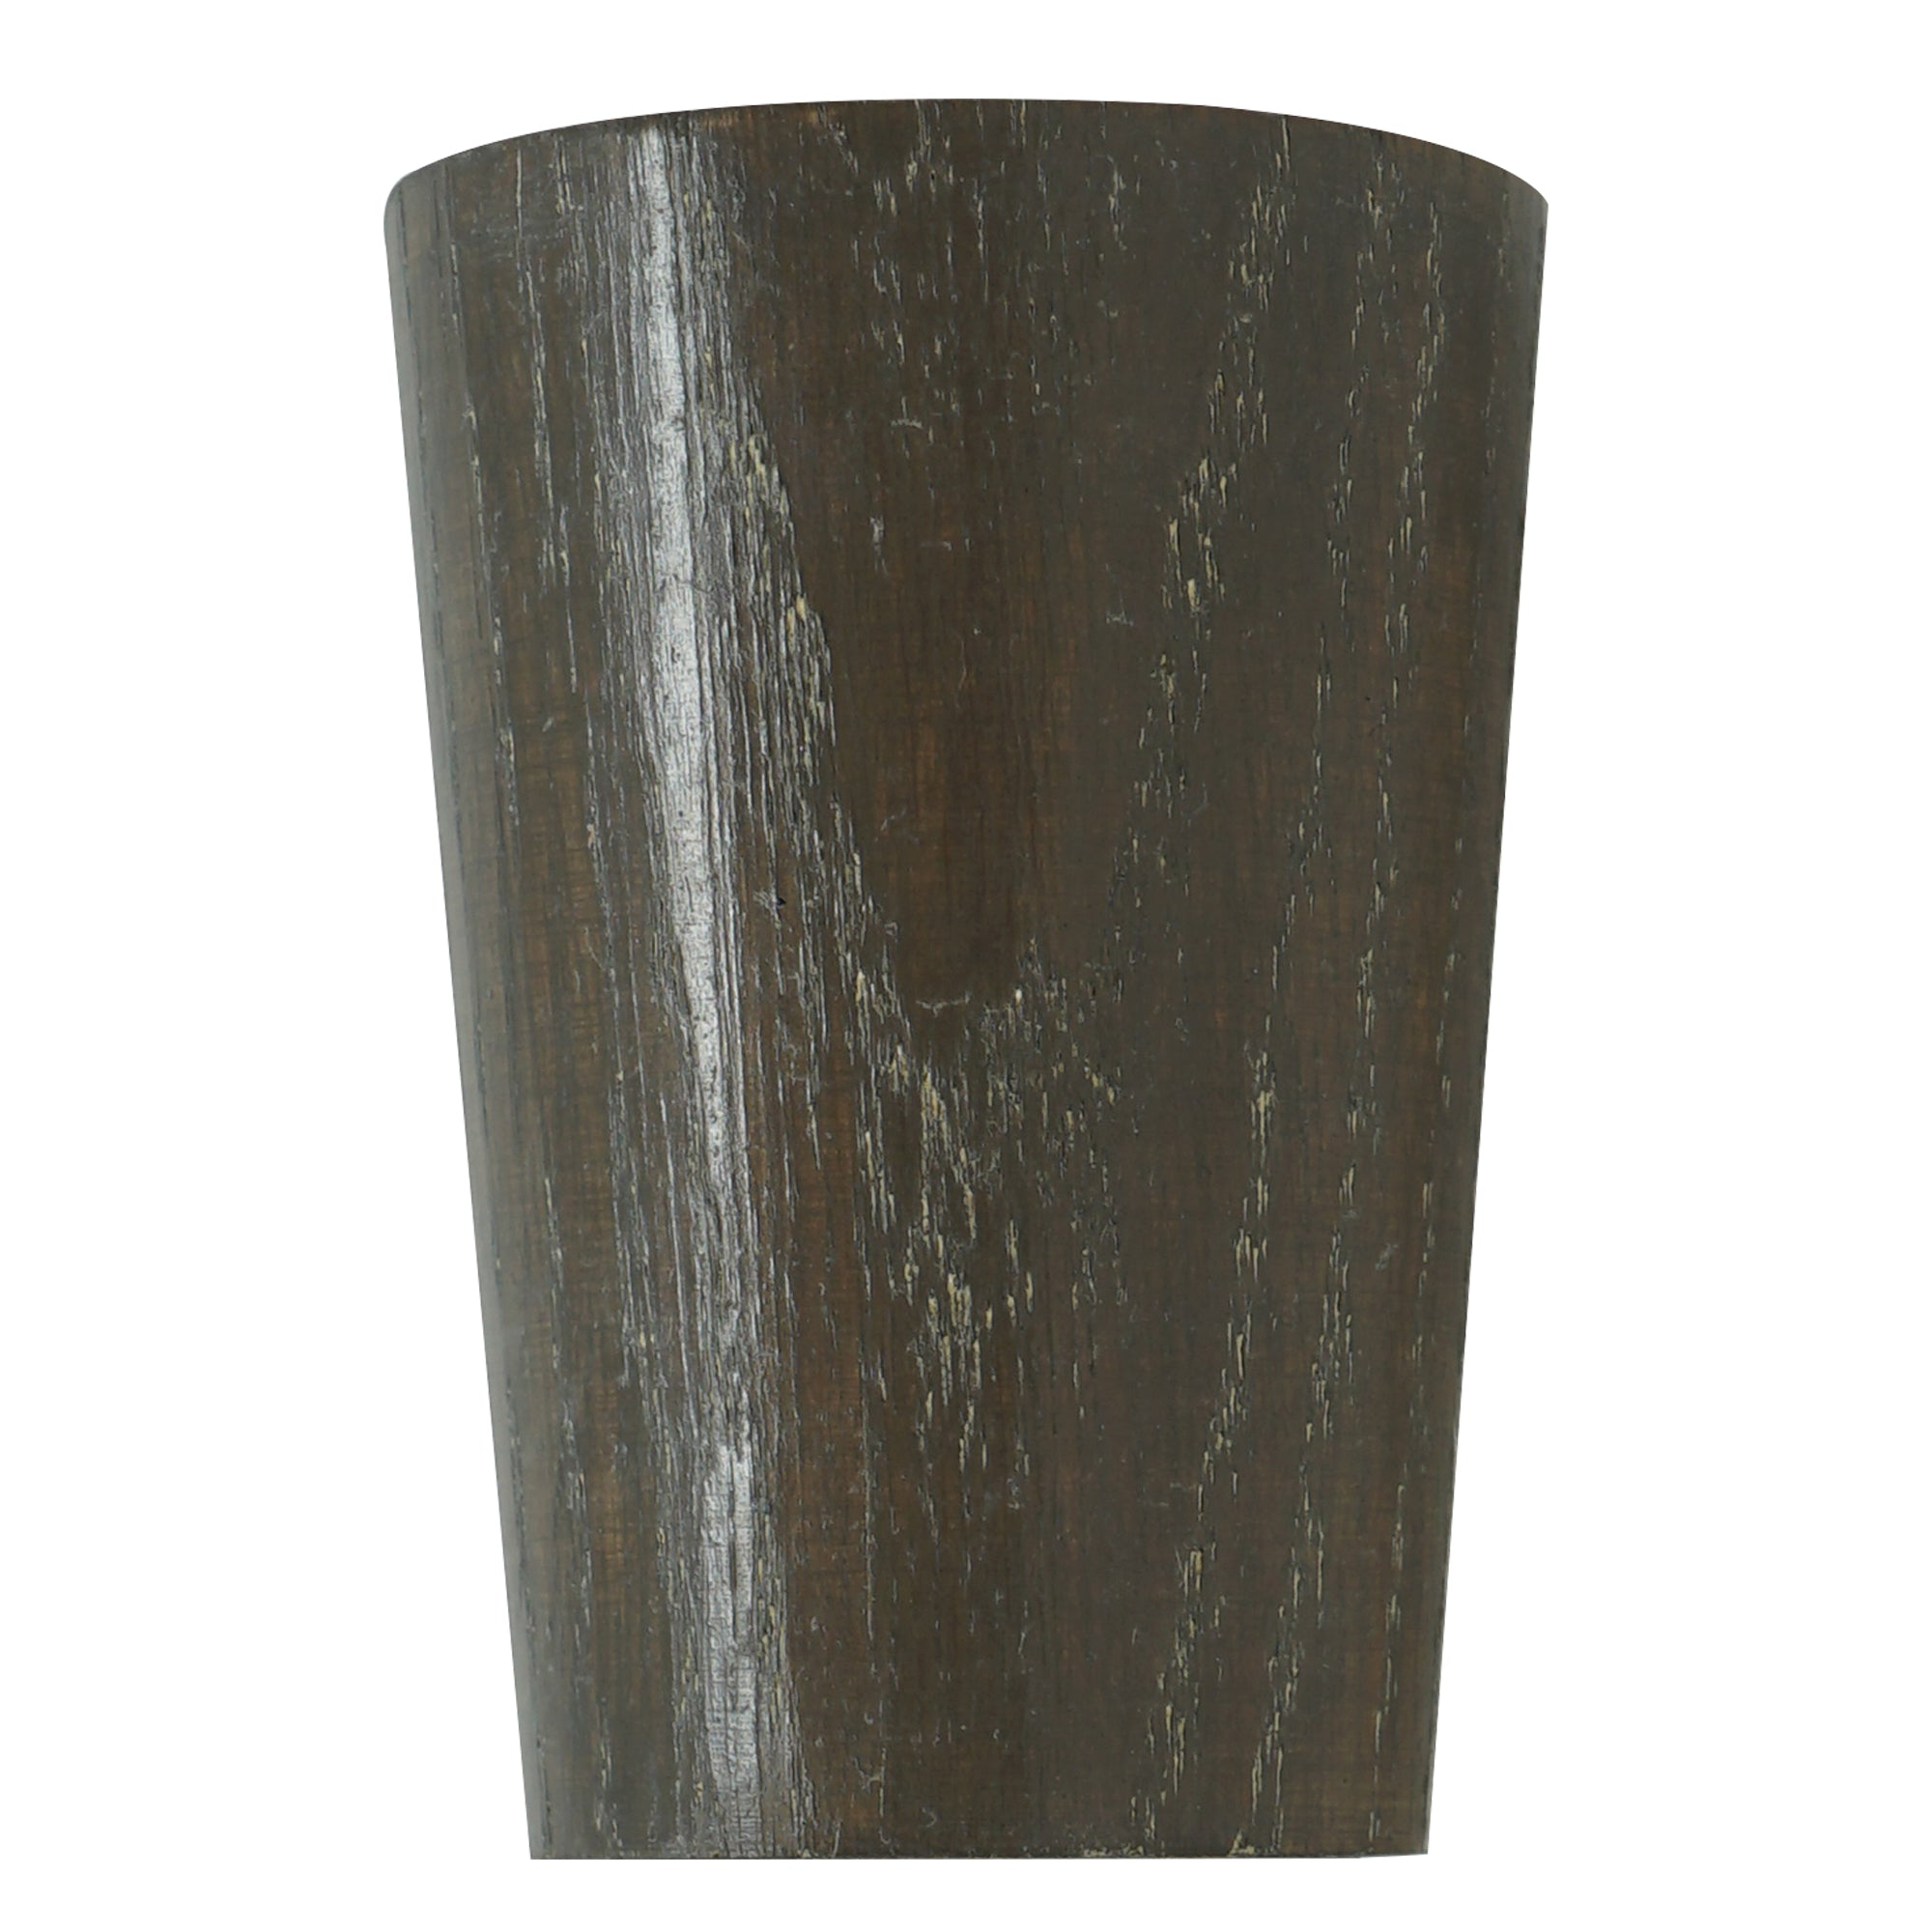 Wood Taper Finial - Chocolate Finish